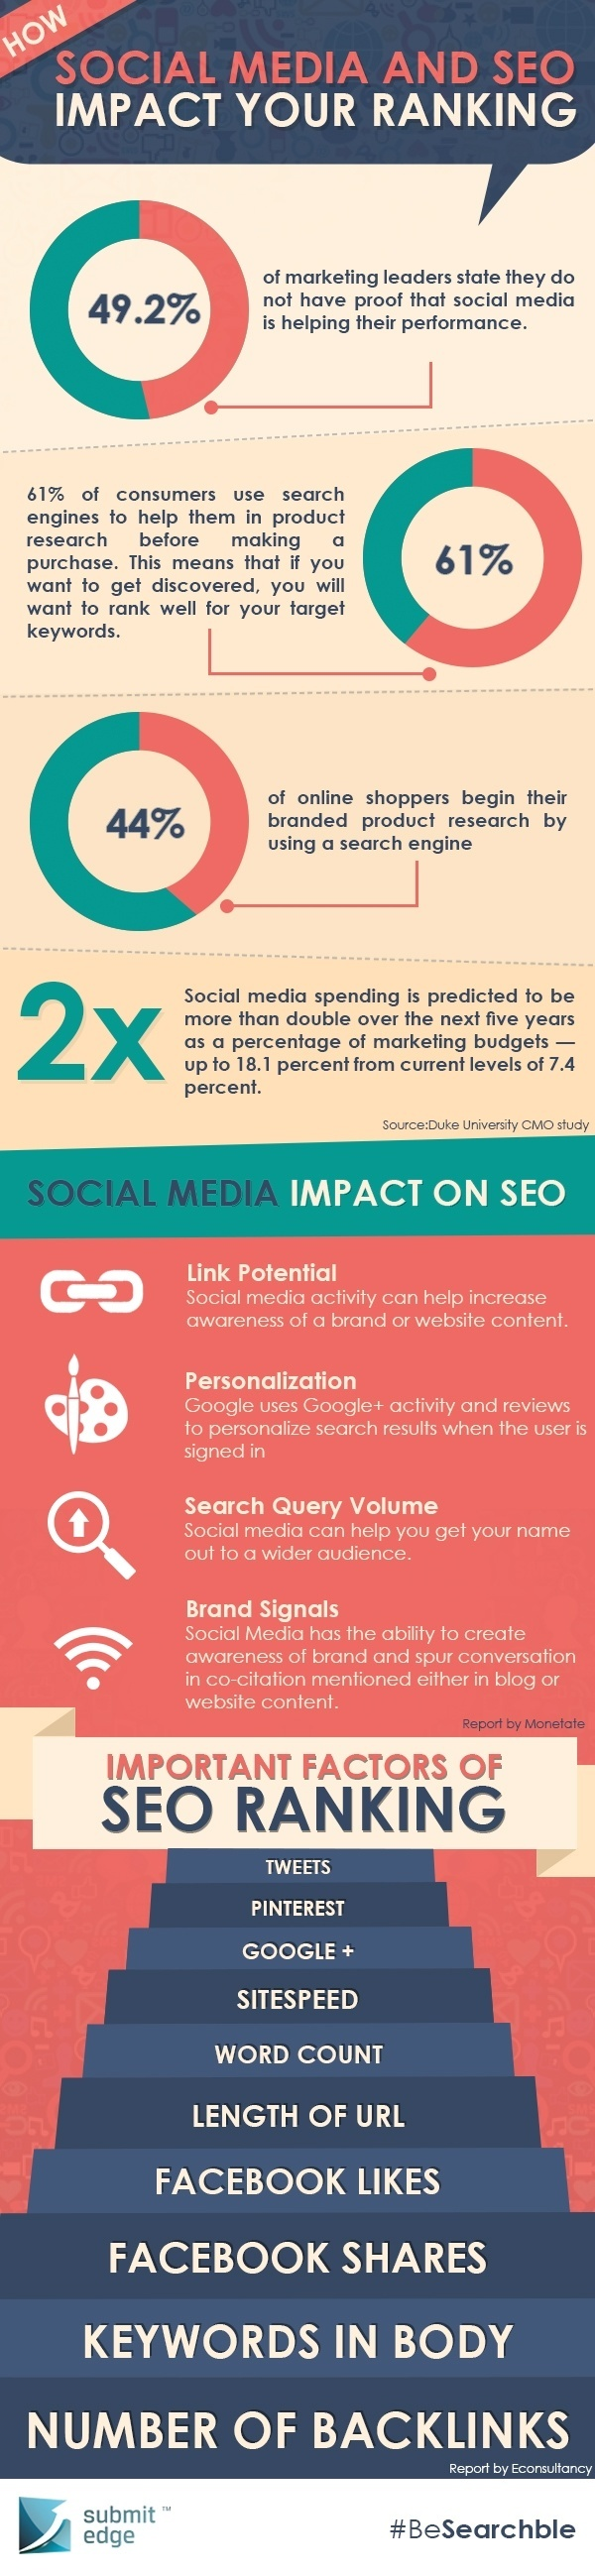 How-Social-Media-and-SEO-Impact-Your-Ranking